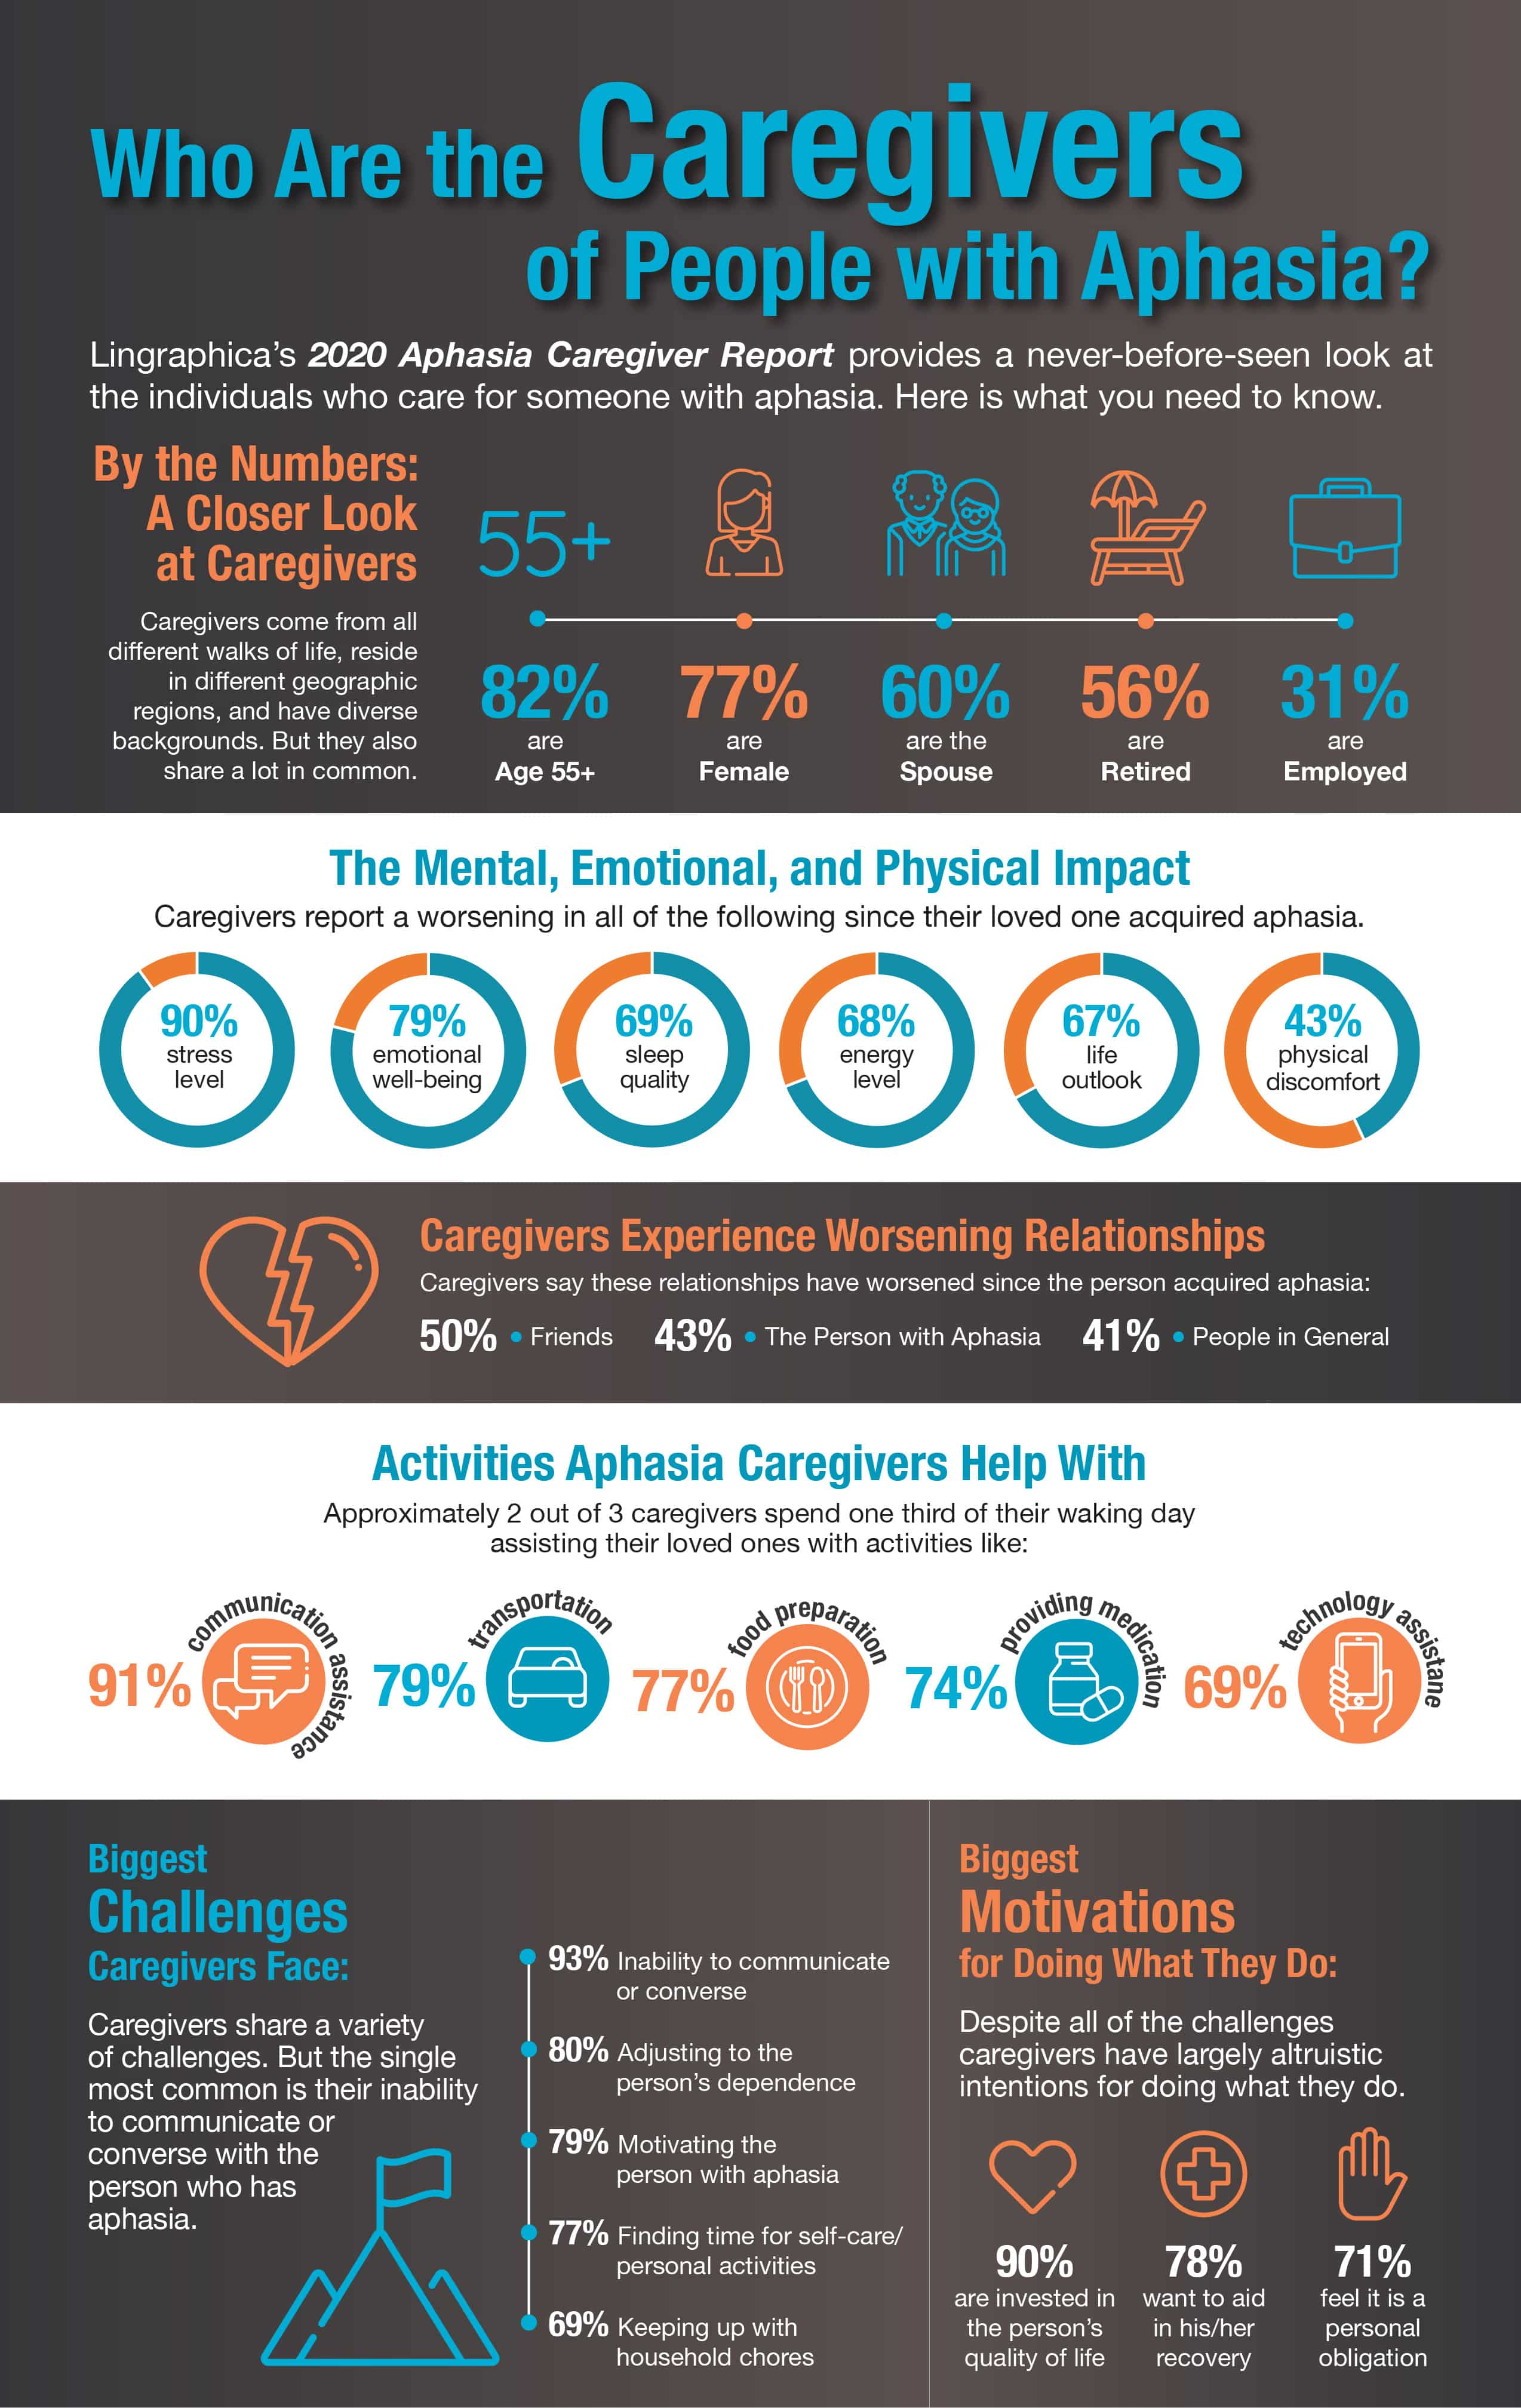 Infographic breaking down Lingraphica's 2020 Aphasia Caregiver Report